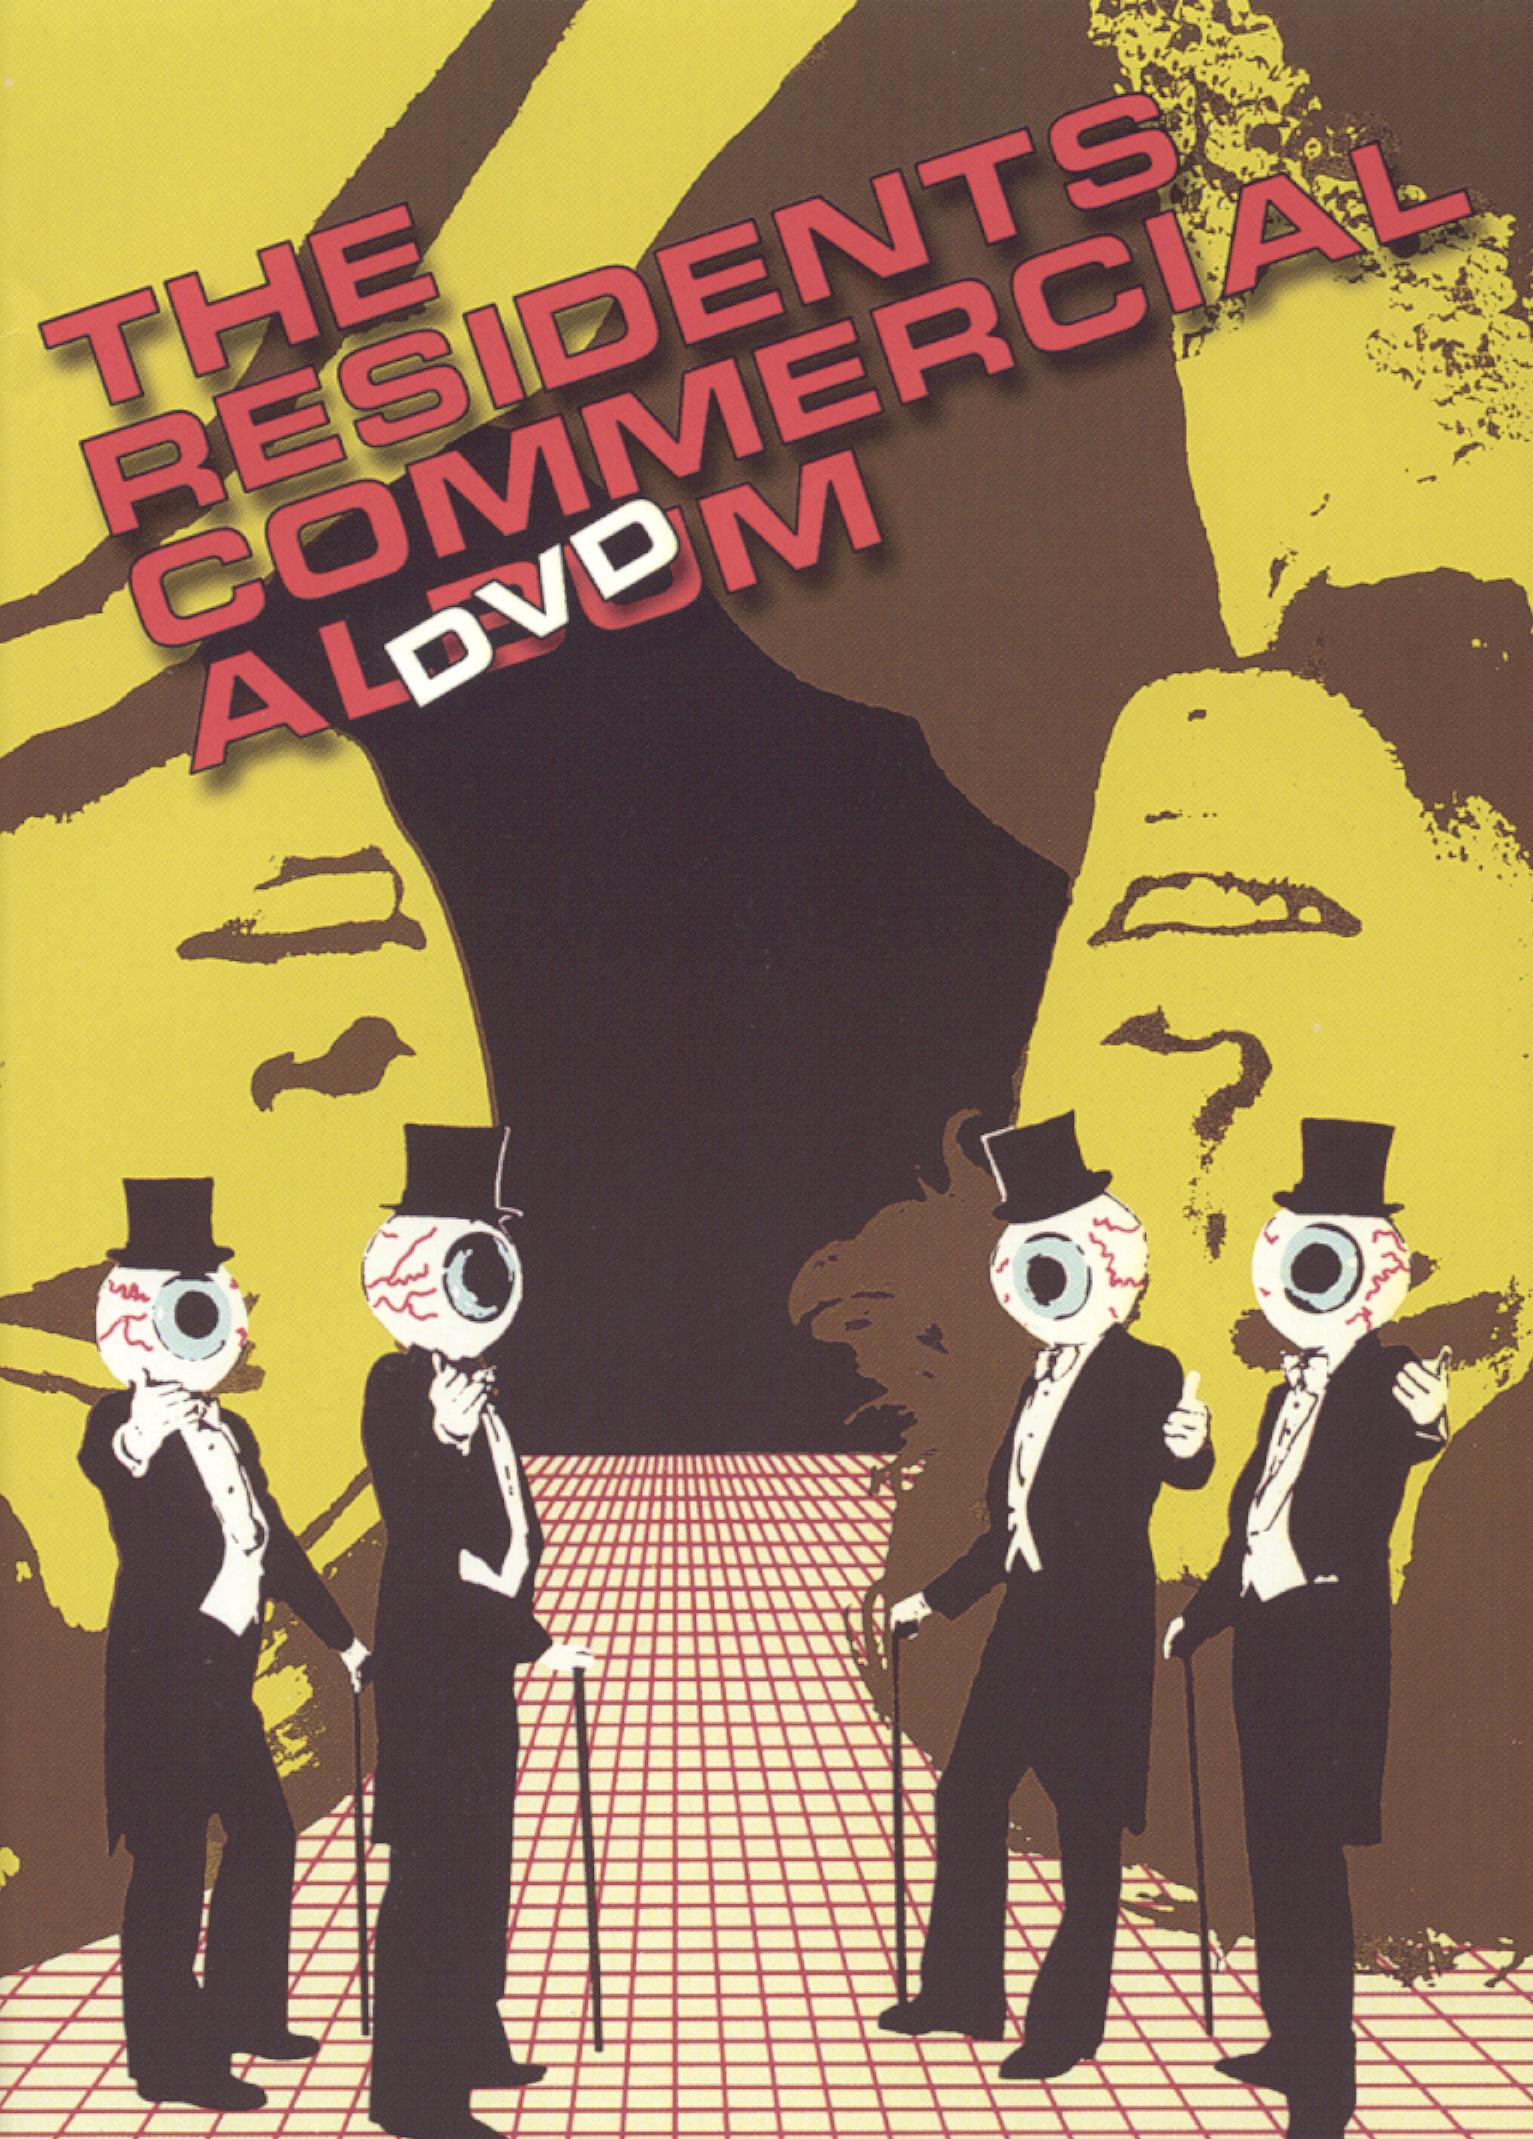 The Residents: Commercial